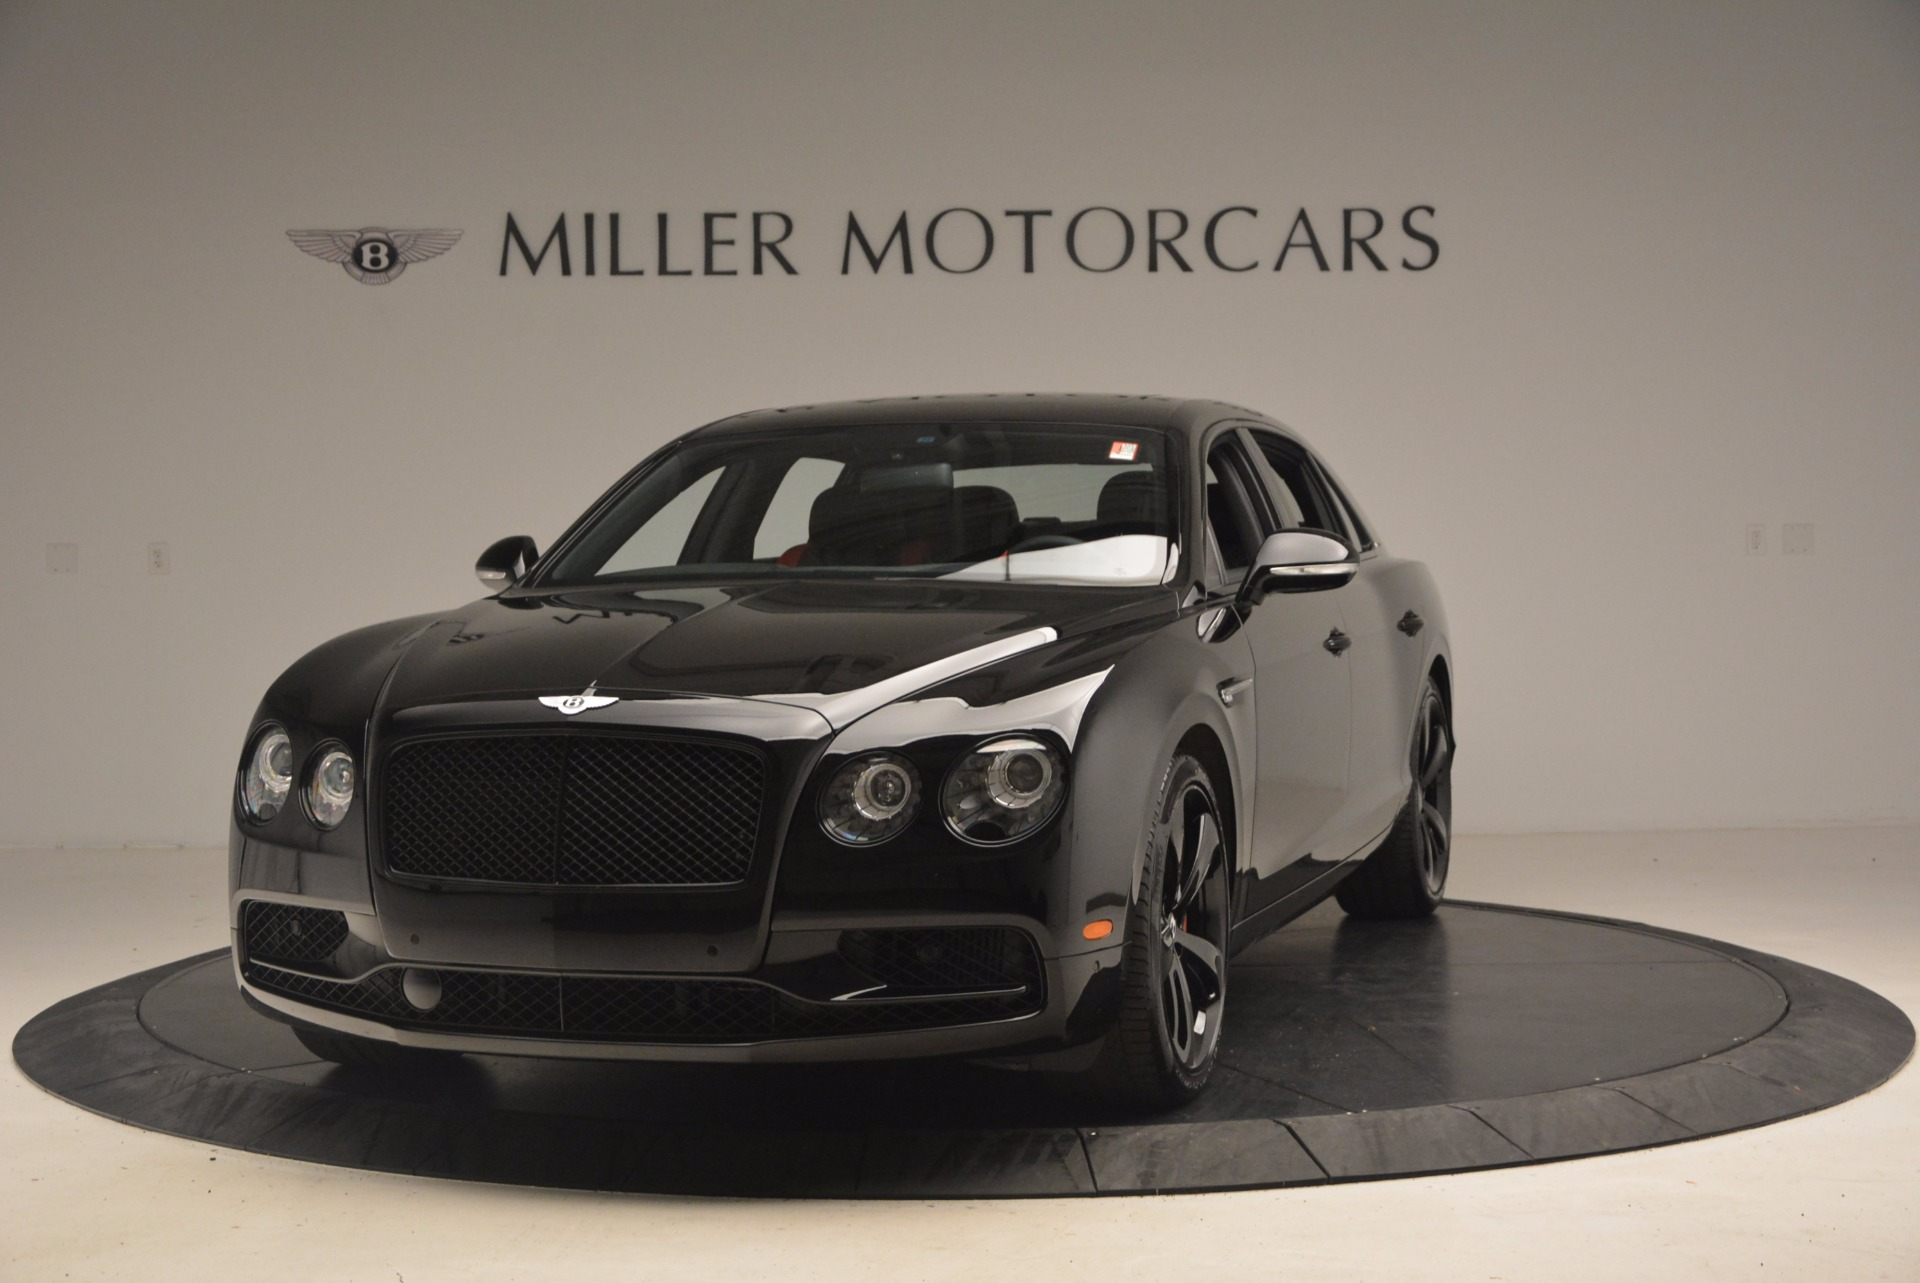 New 2017 Bentley Flying Spur W12 S for sale Sold at McLaren Greenwich in Greenwich CT 06830 1